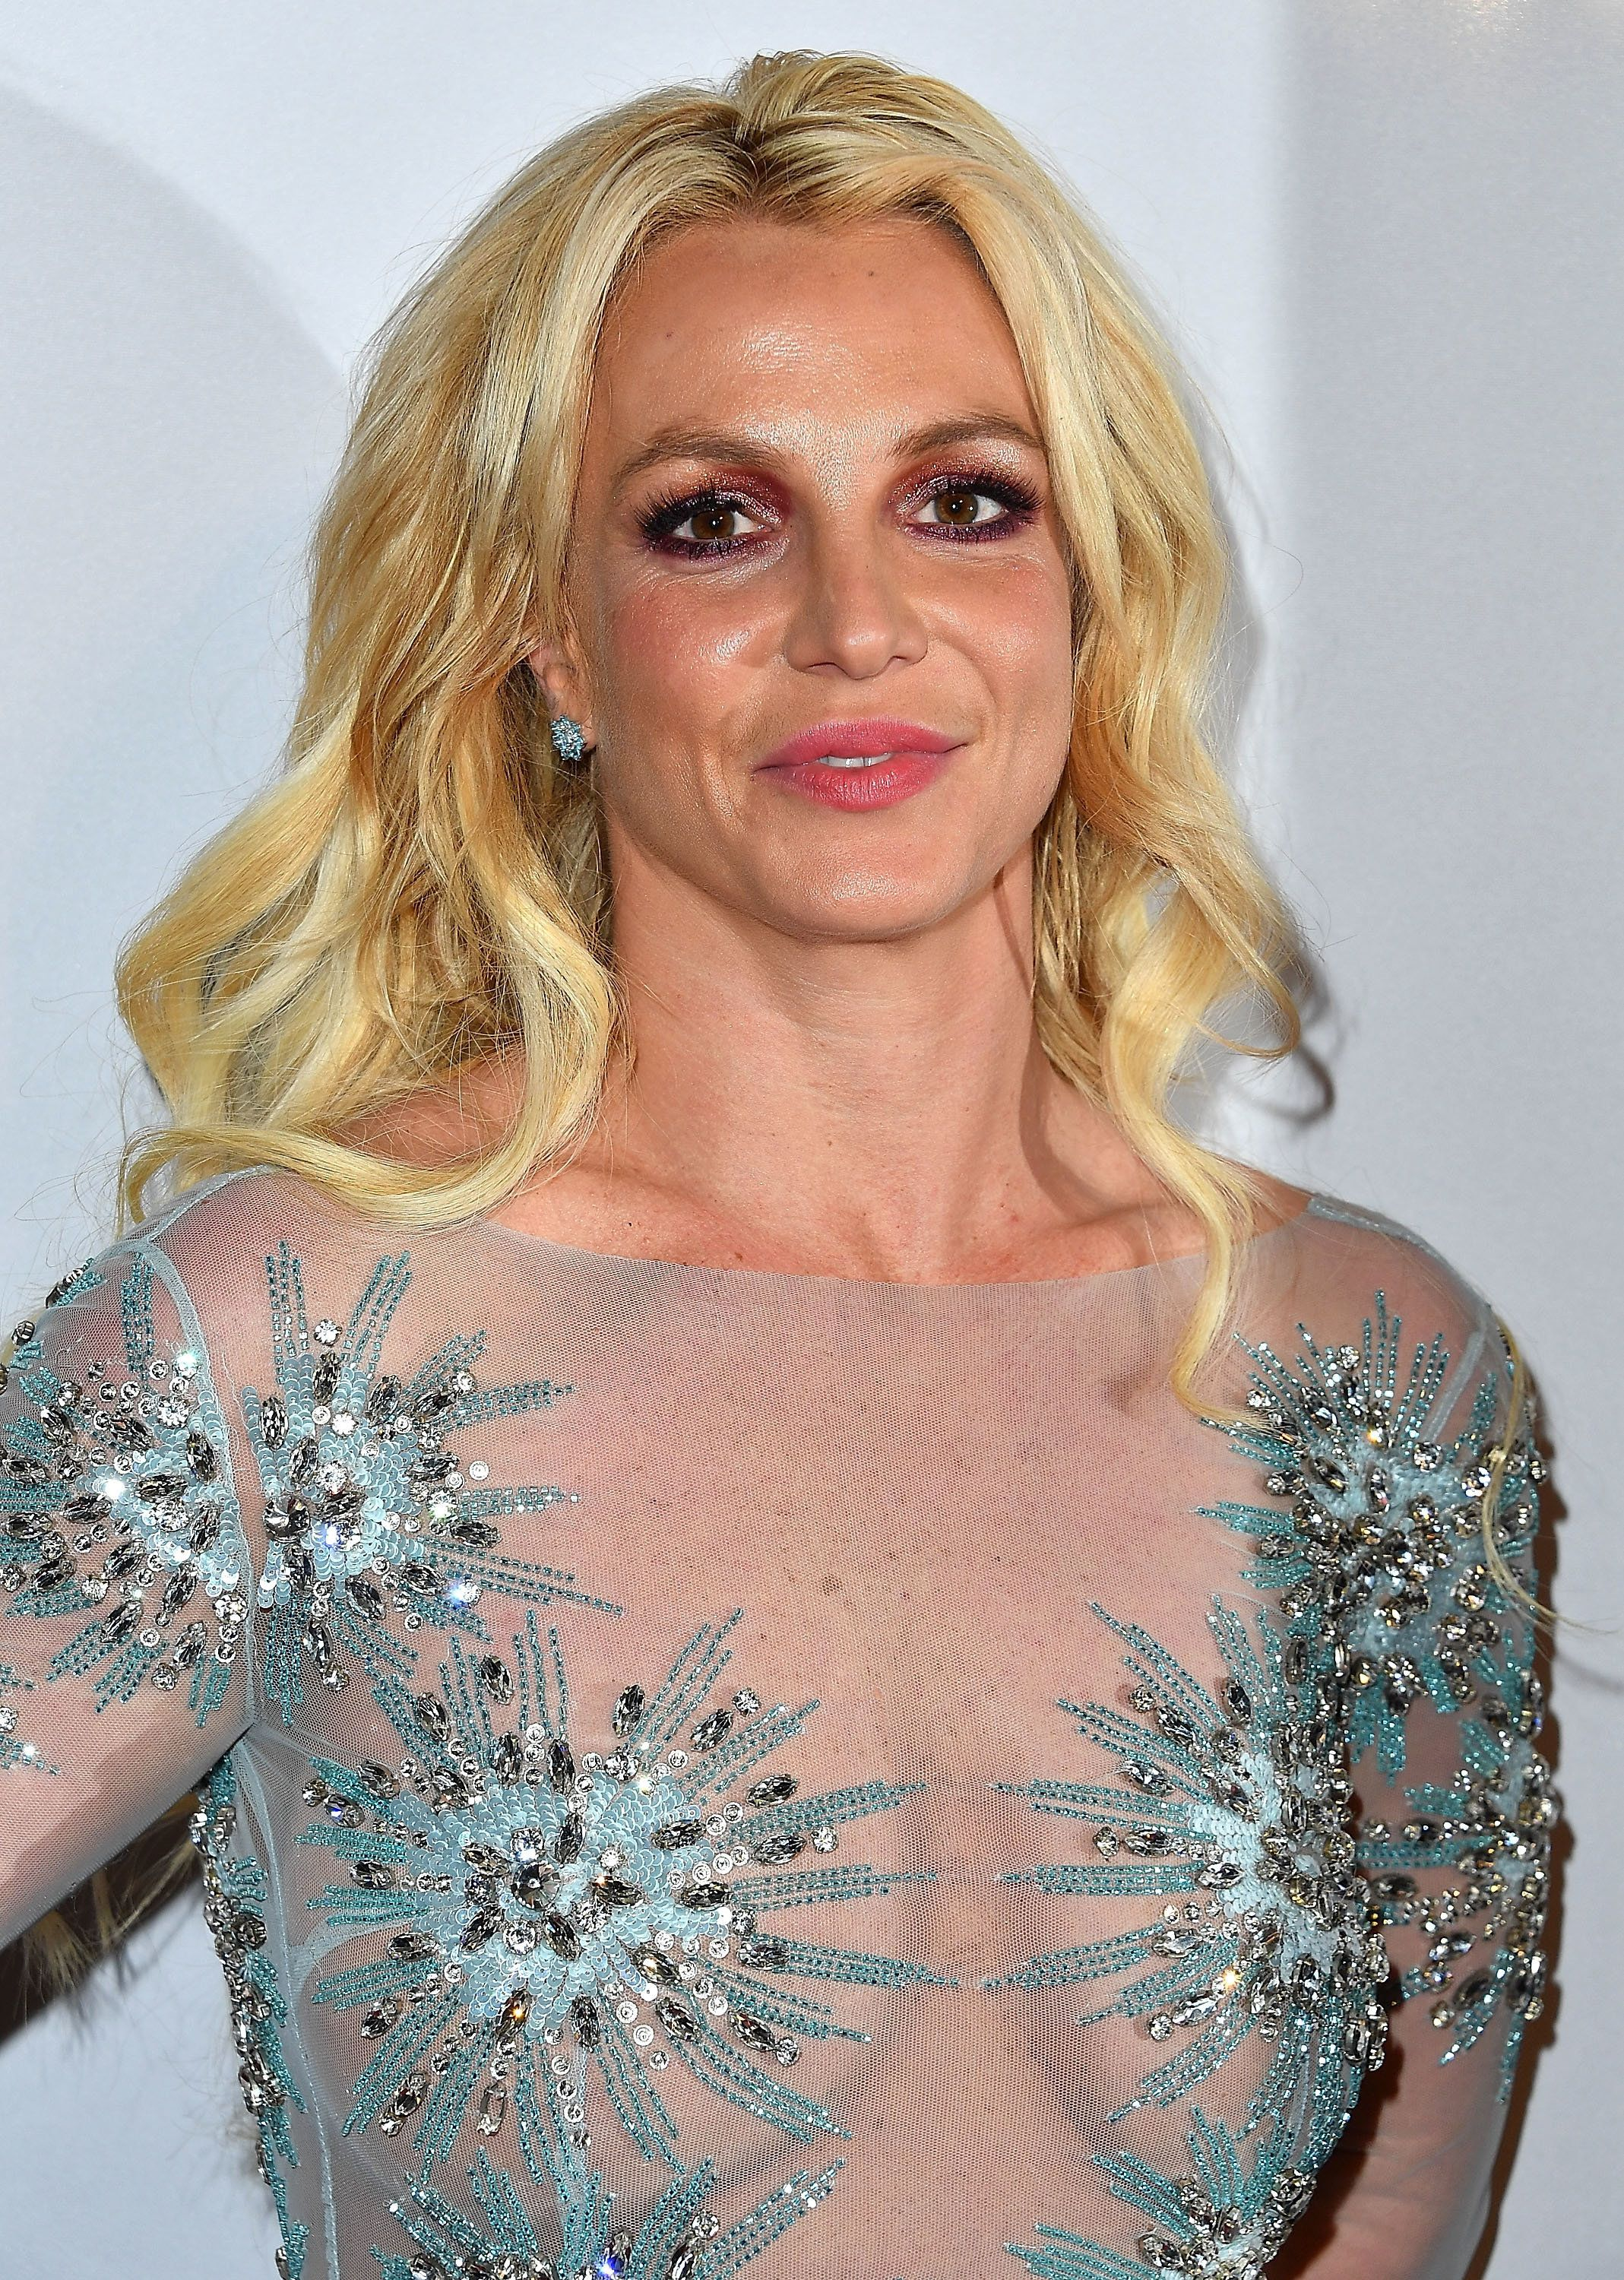 Britney Spears Opens Up About Her 'Awful' Twenties: 'I Was